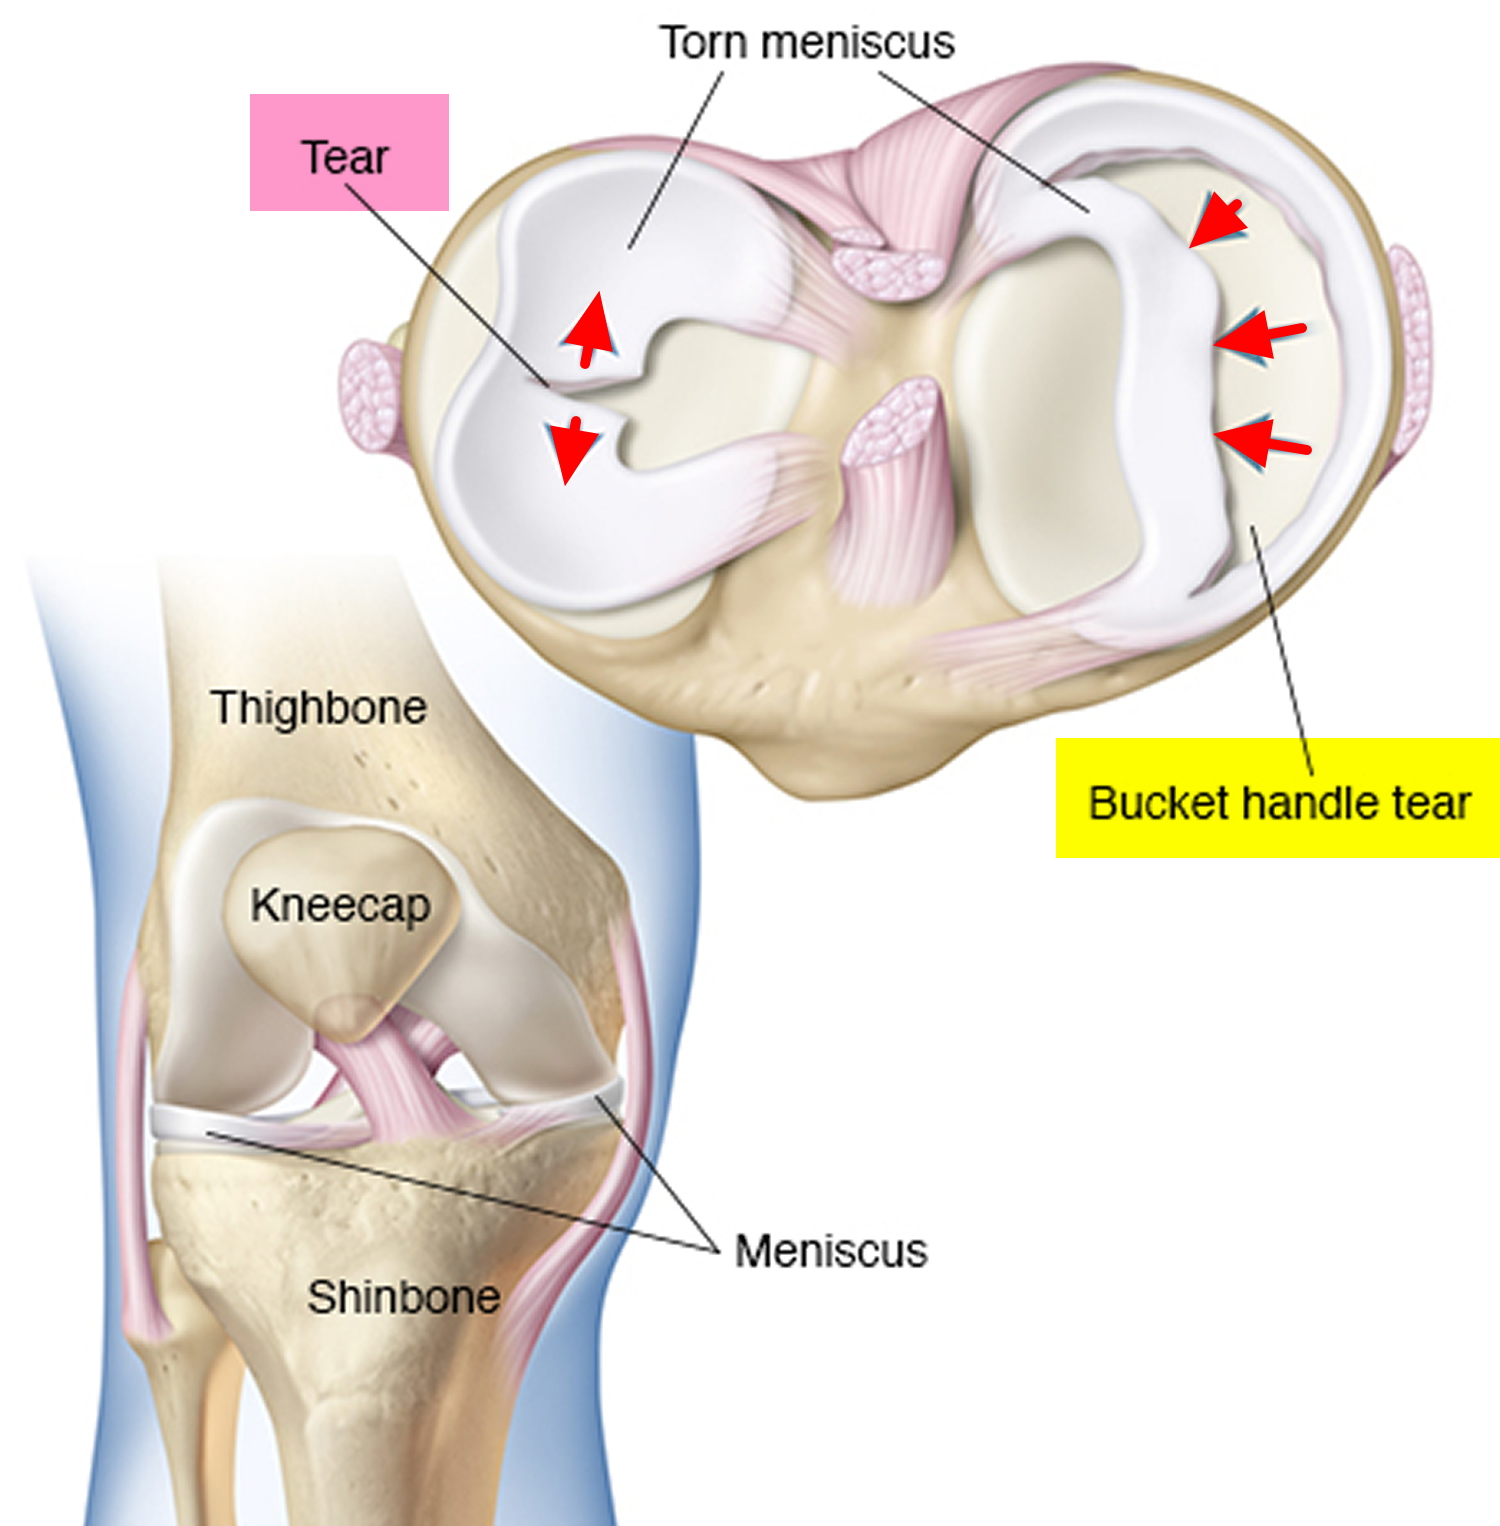 Torn Meniscus - Signs & Symptoms, Test, Diagnosis, Recovery, Treatment